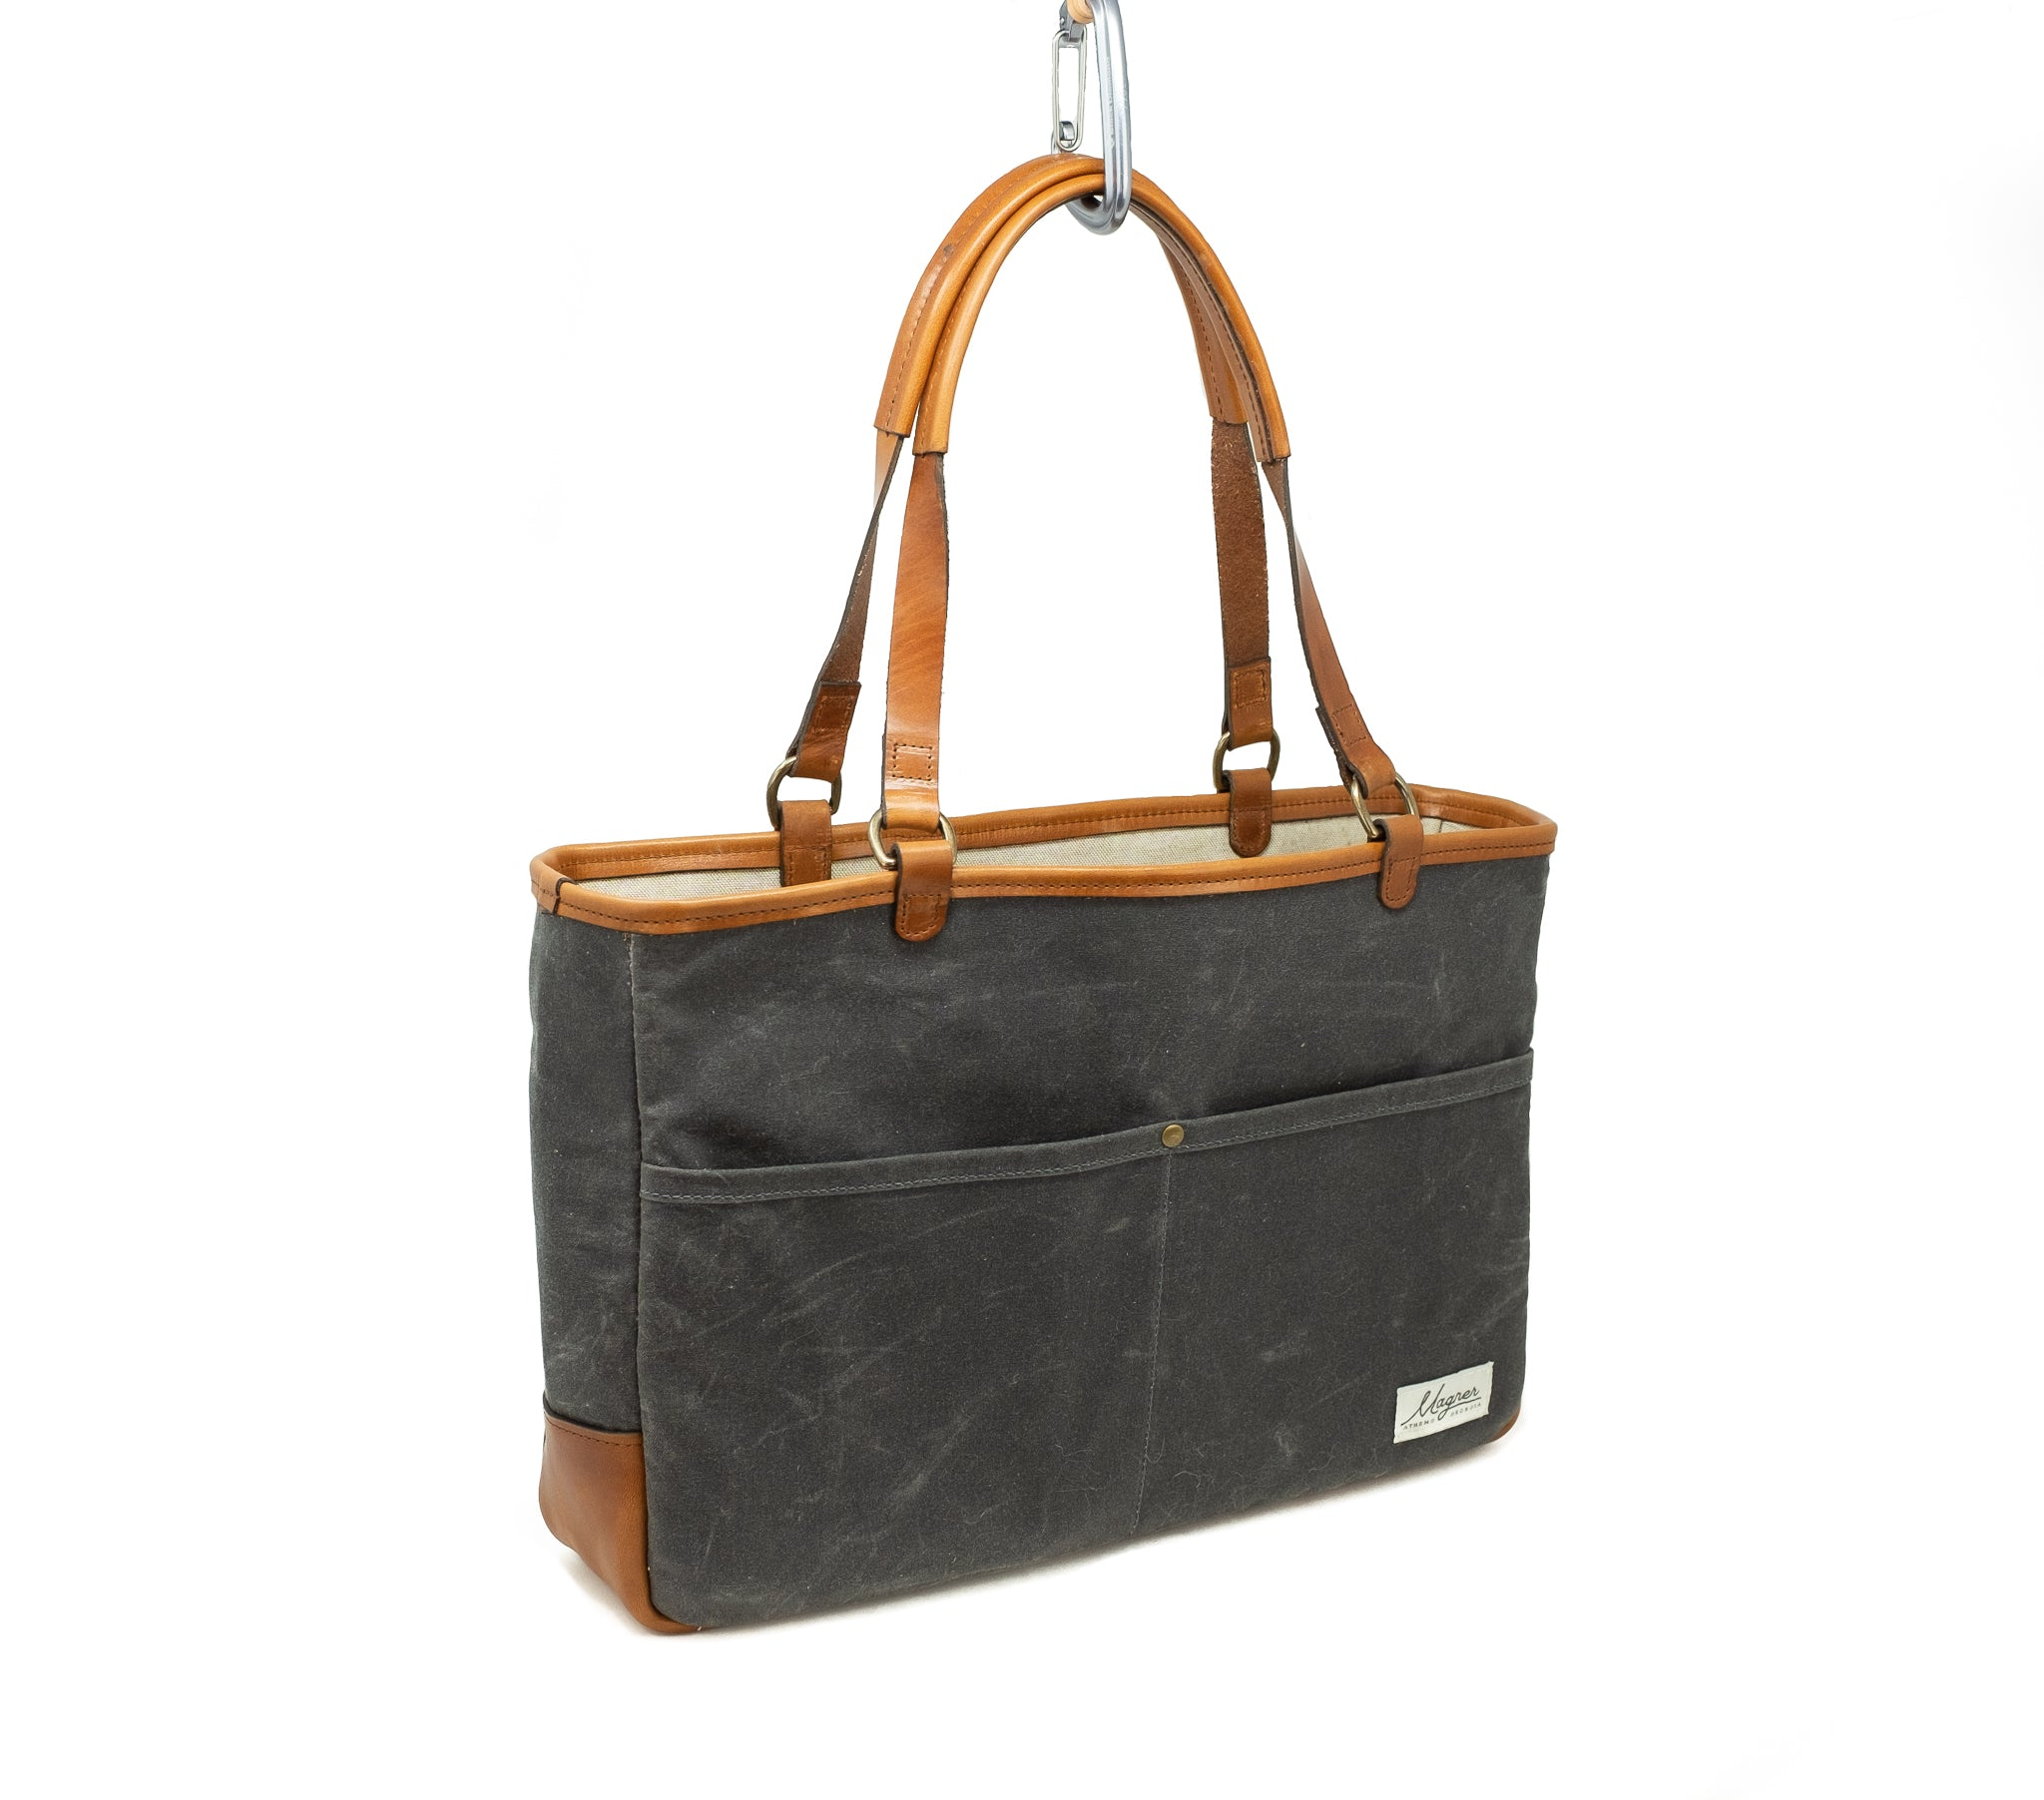 BriefTote